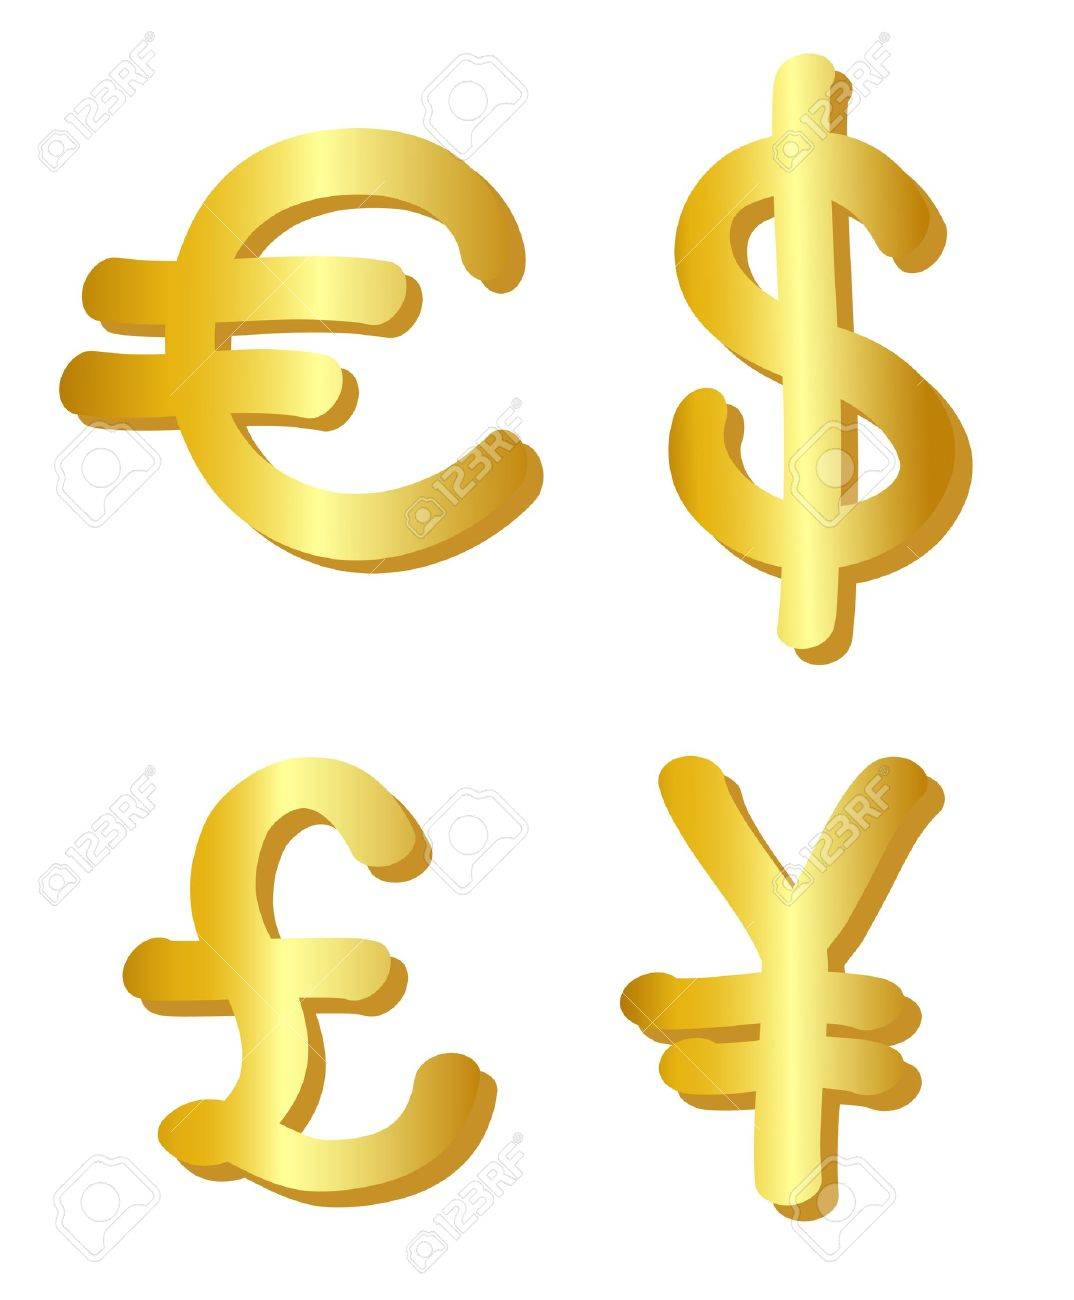 Euro, dollar, pound and yen symbols. Vector-Illustration Stock Vector - 11882393